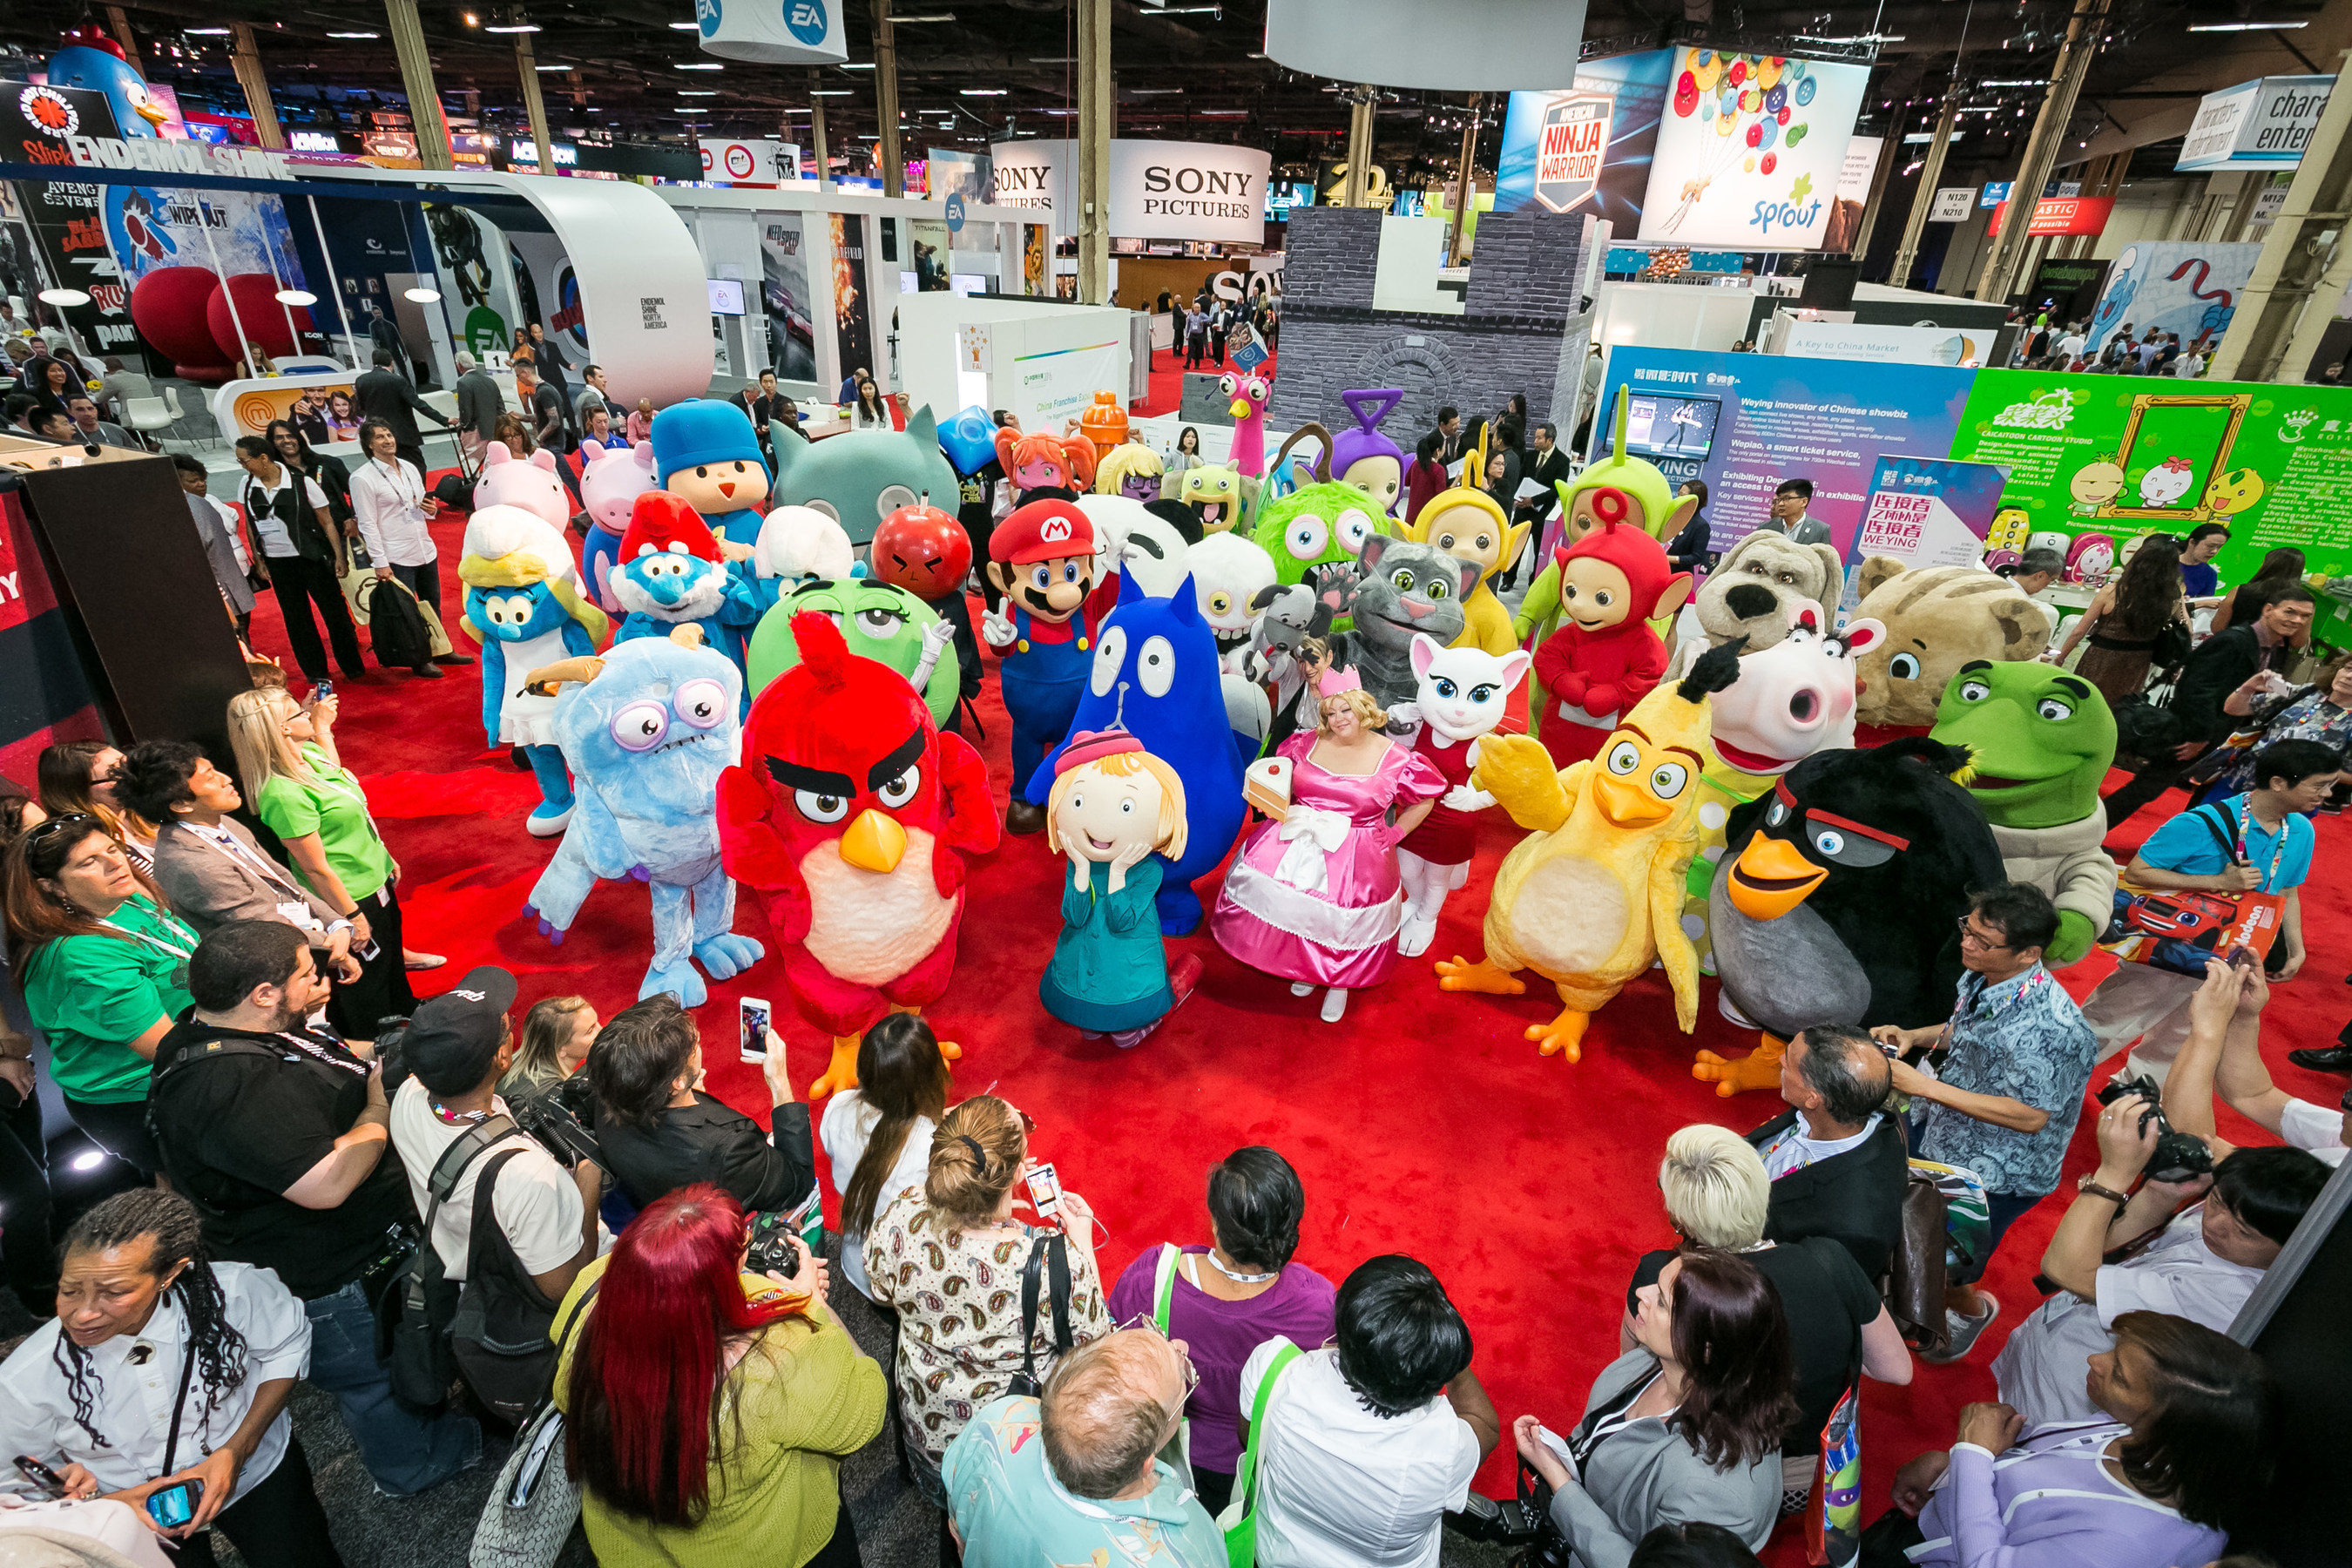 Spotlight on Character and Entertainment Brands at Licensing Expo 2016